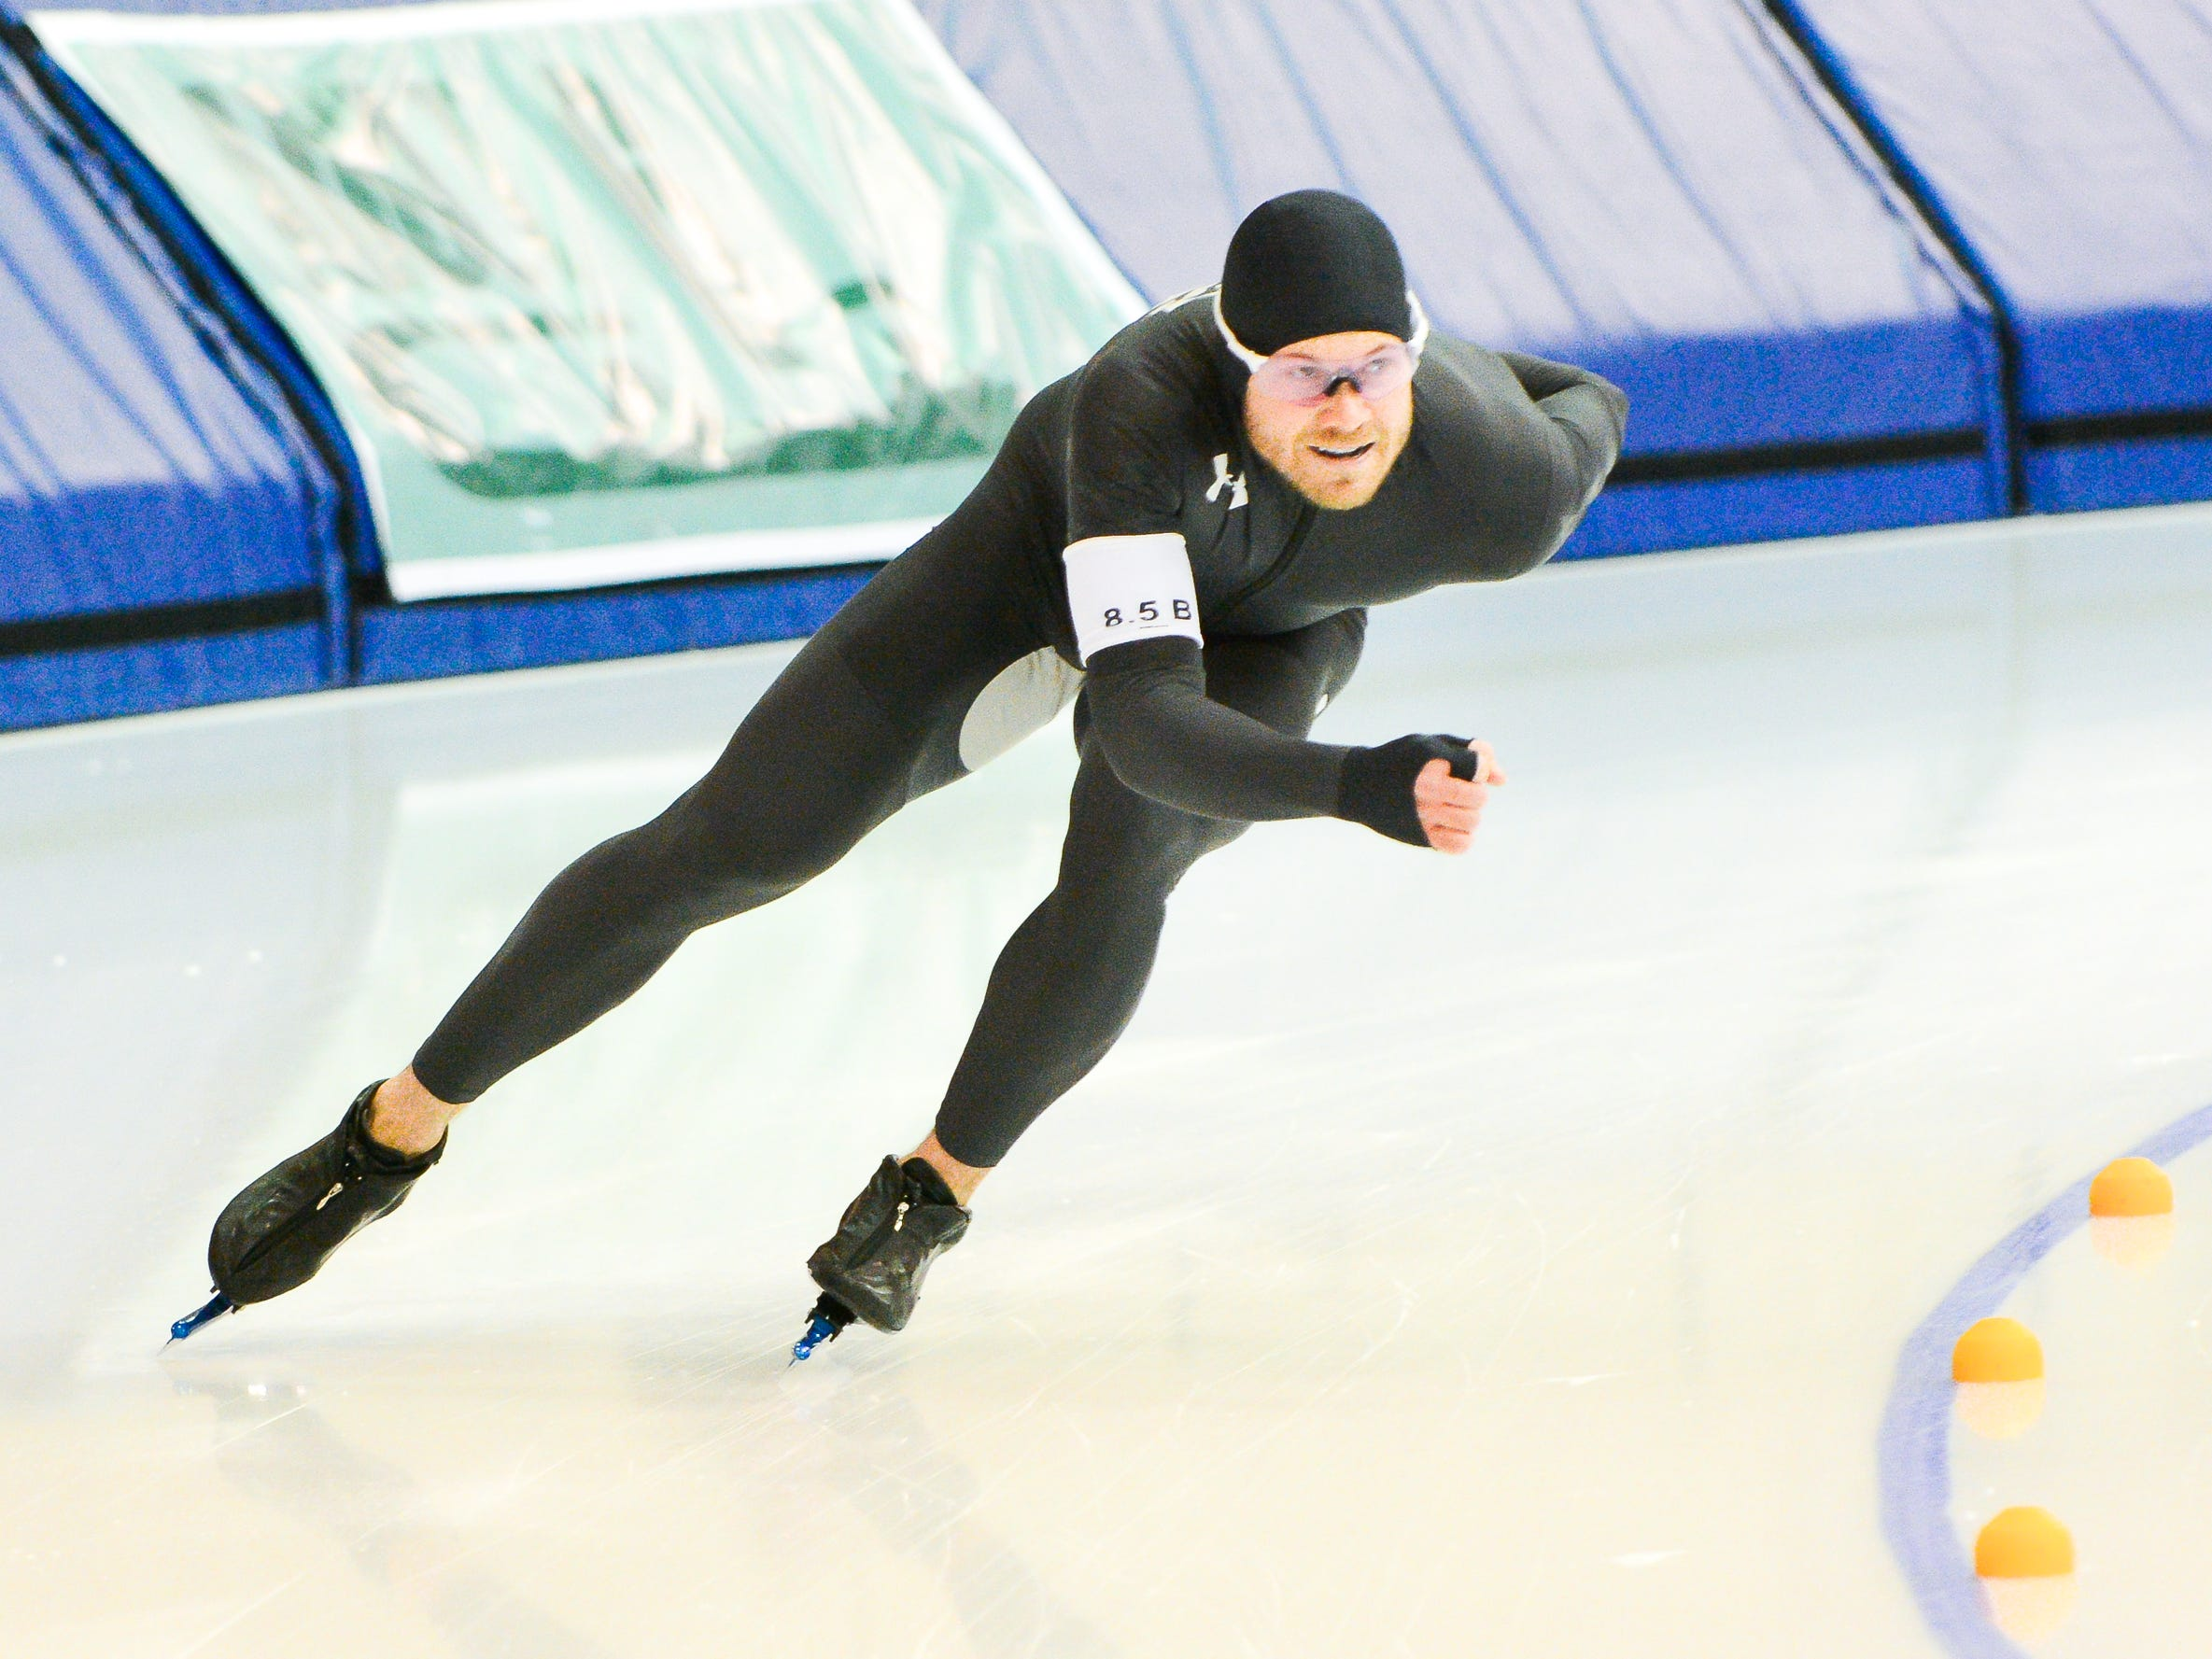 Joey Mantia races in the men's 1,500 meters at the U.S. World Cup qualifying event Sunday, November 4, 2018, at the Pettit National Ice Center. Mantia won the event.